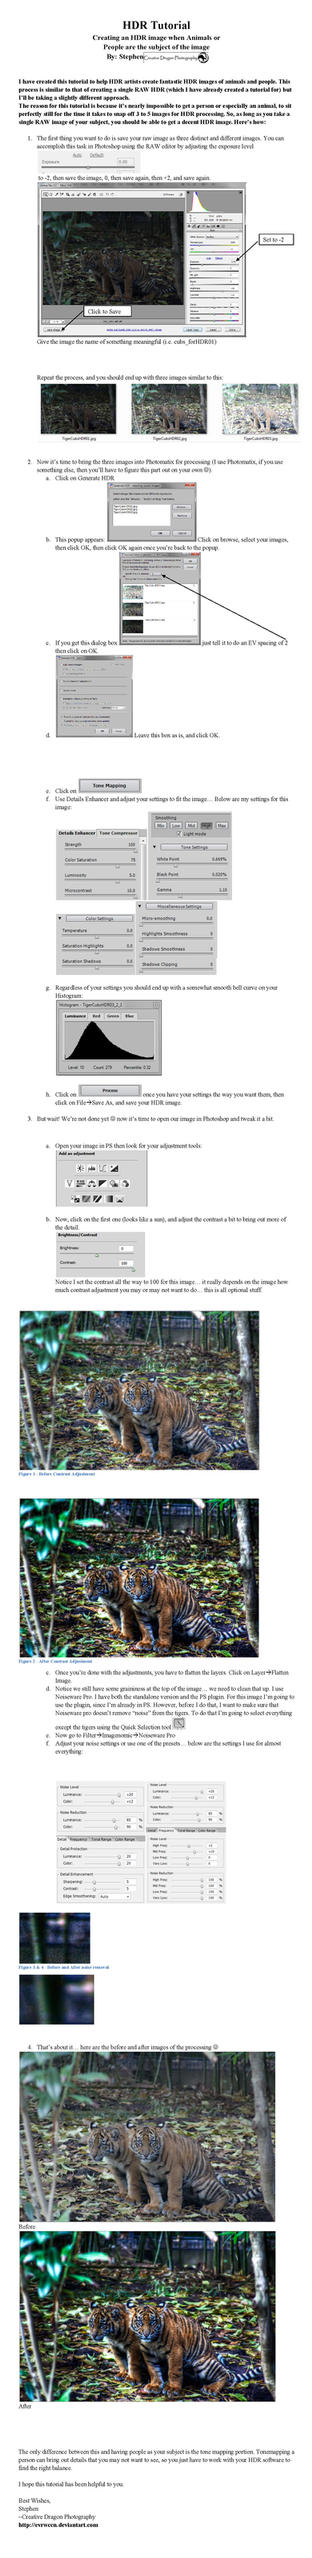 HDR Tutorial Animals People by Creative--Dragon